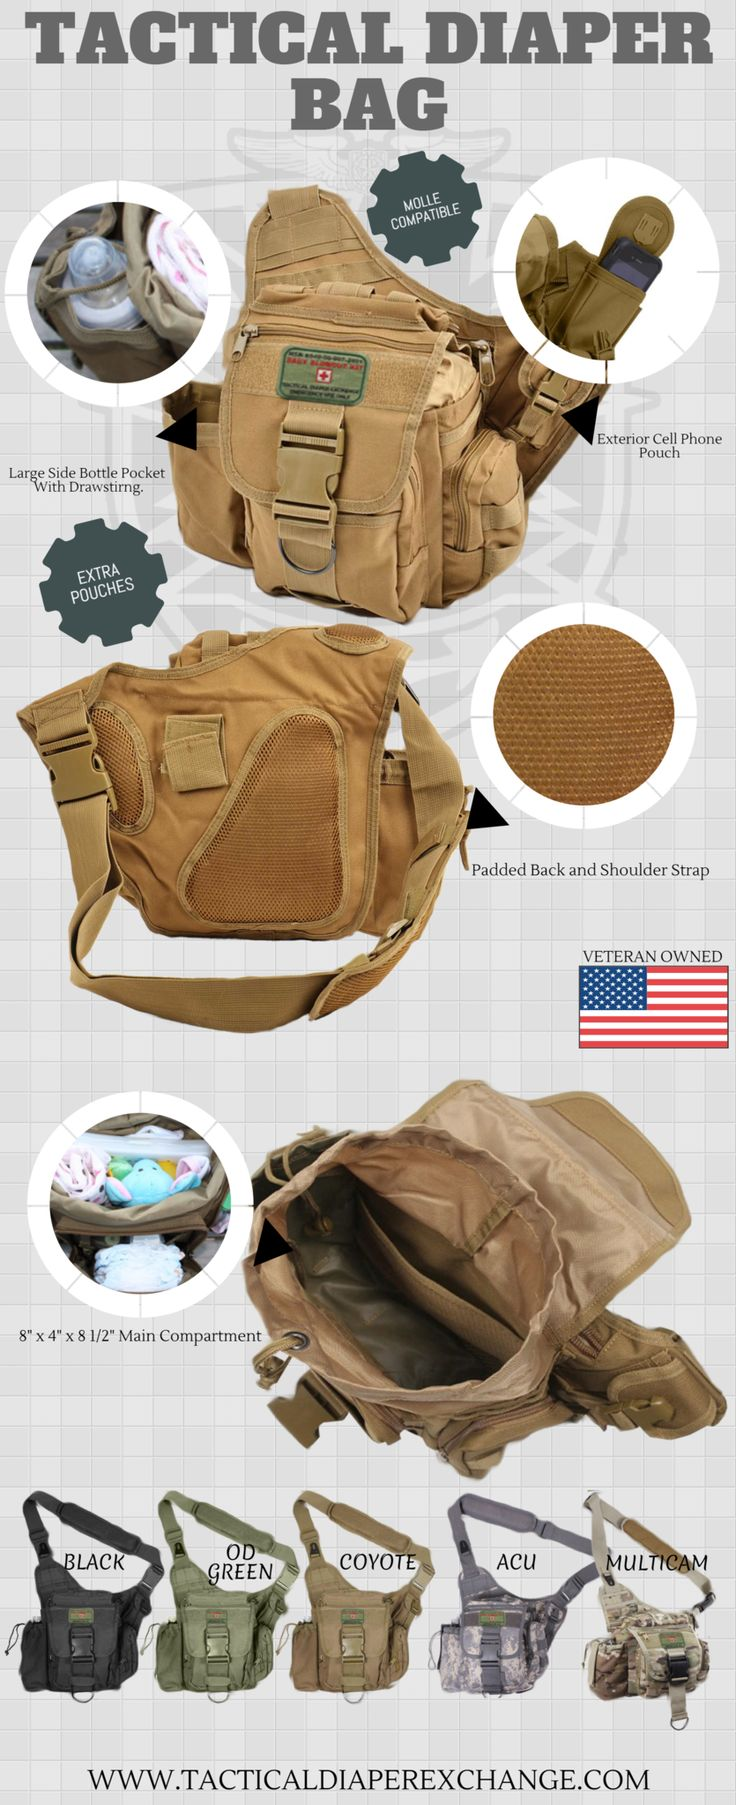 The Daddy Doody Bag - Perfect Father's Day gift | Tactical Diaper Exchange